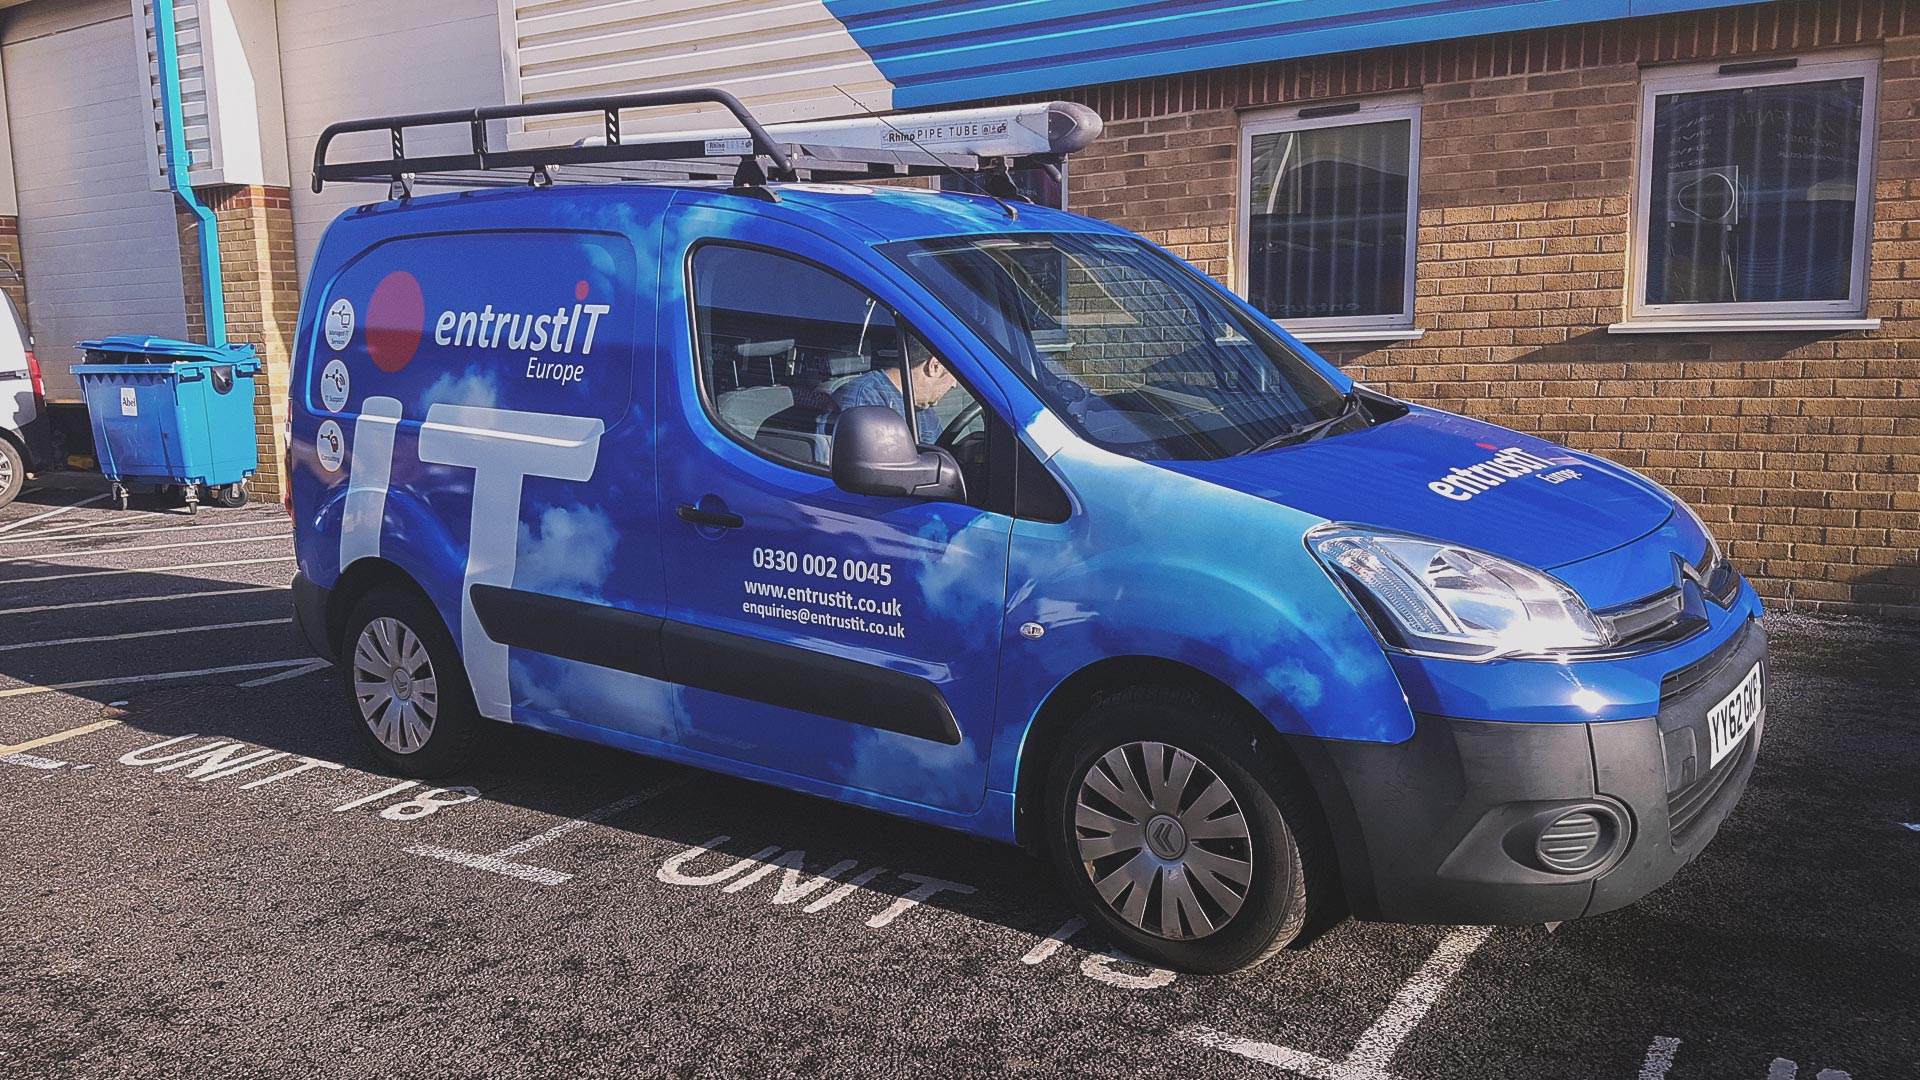 Portfolio - Entrust It Vehicle Wrapping